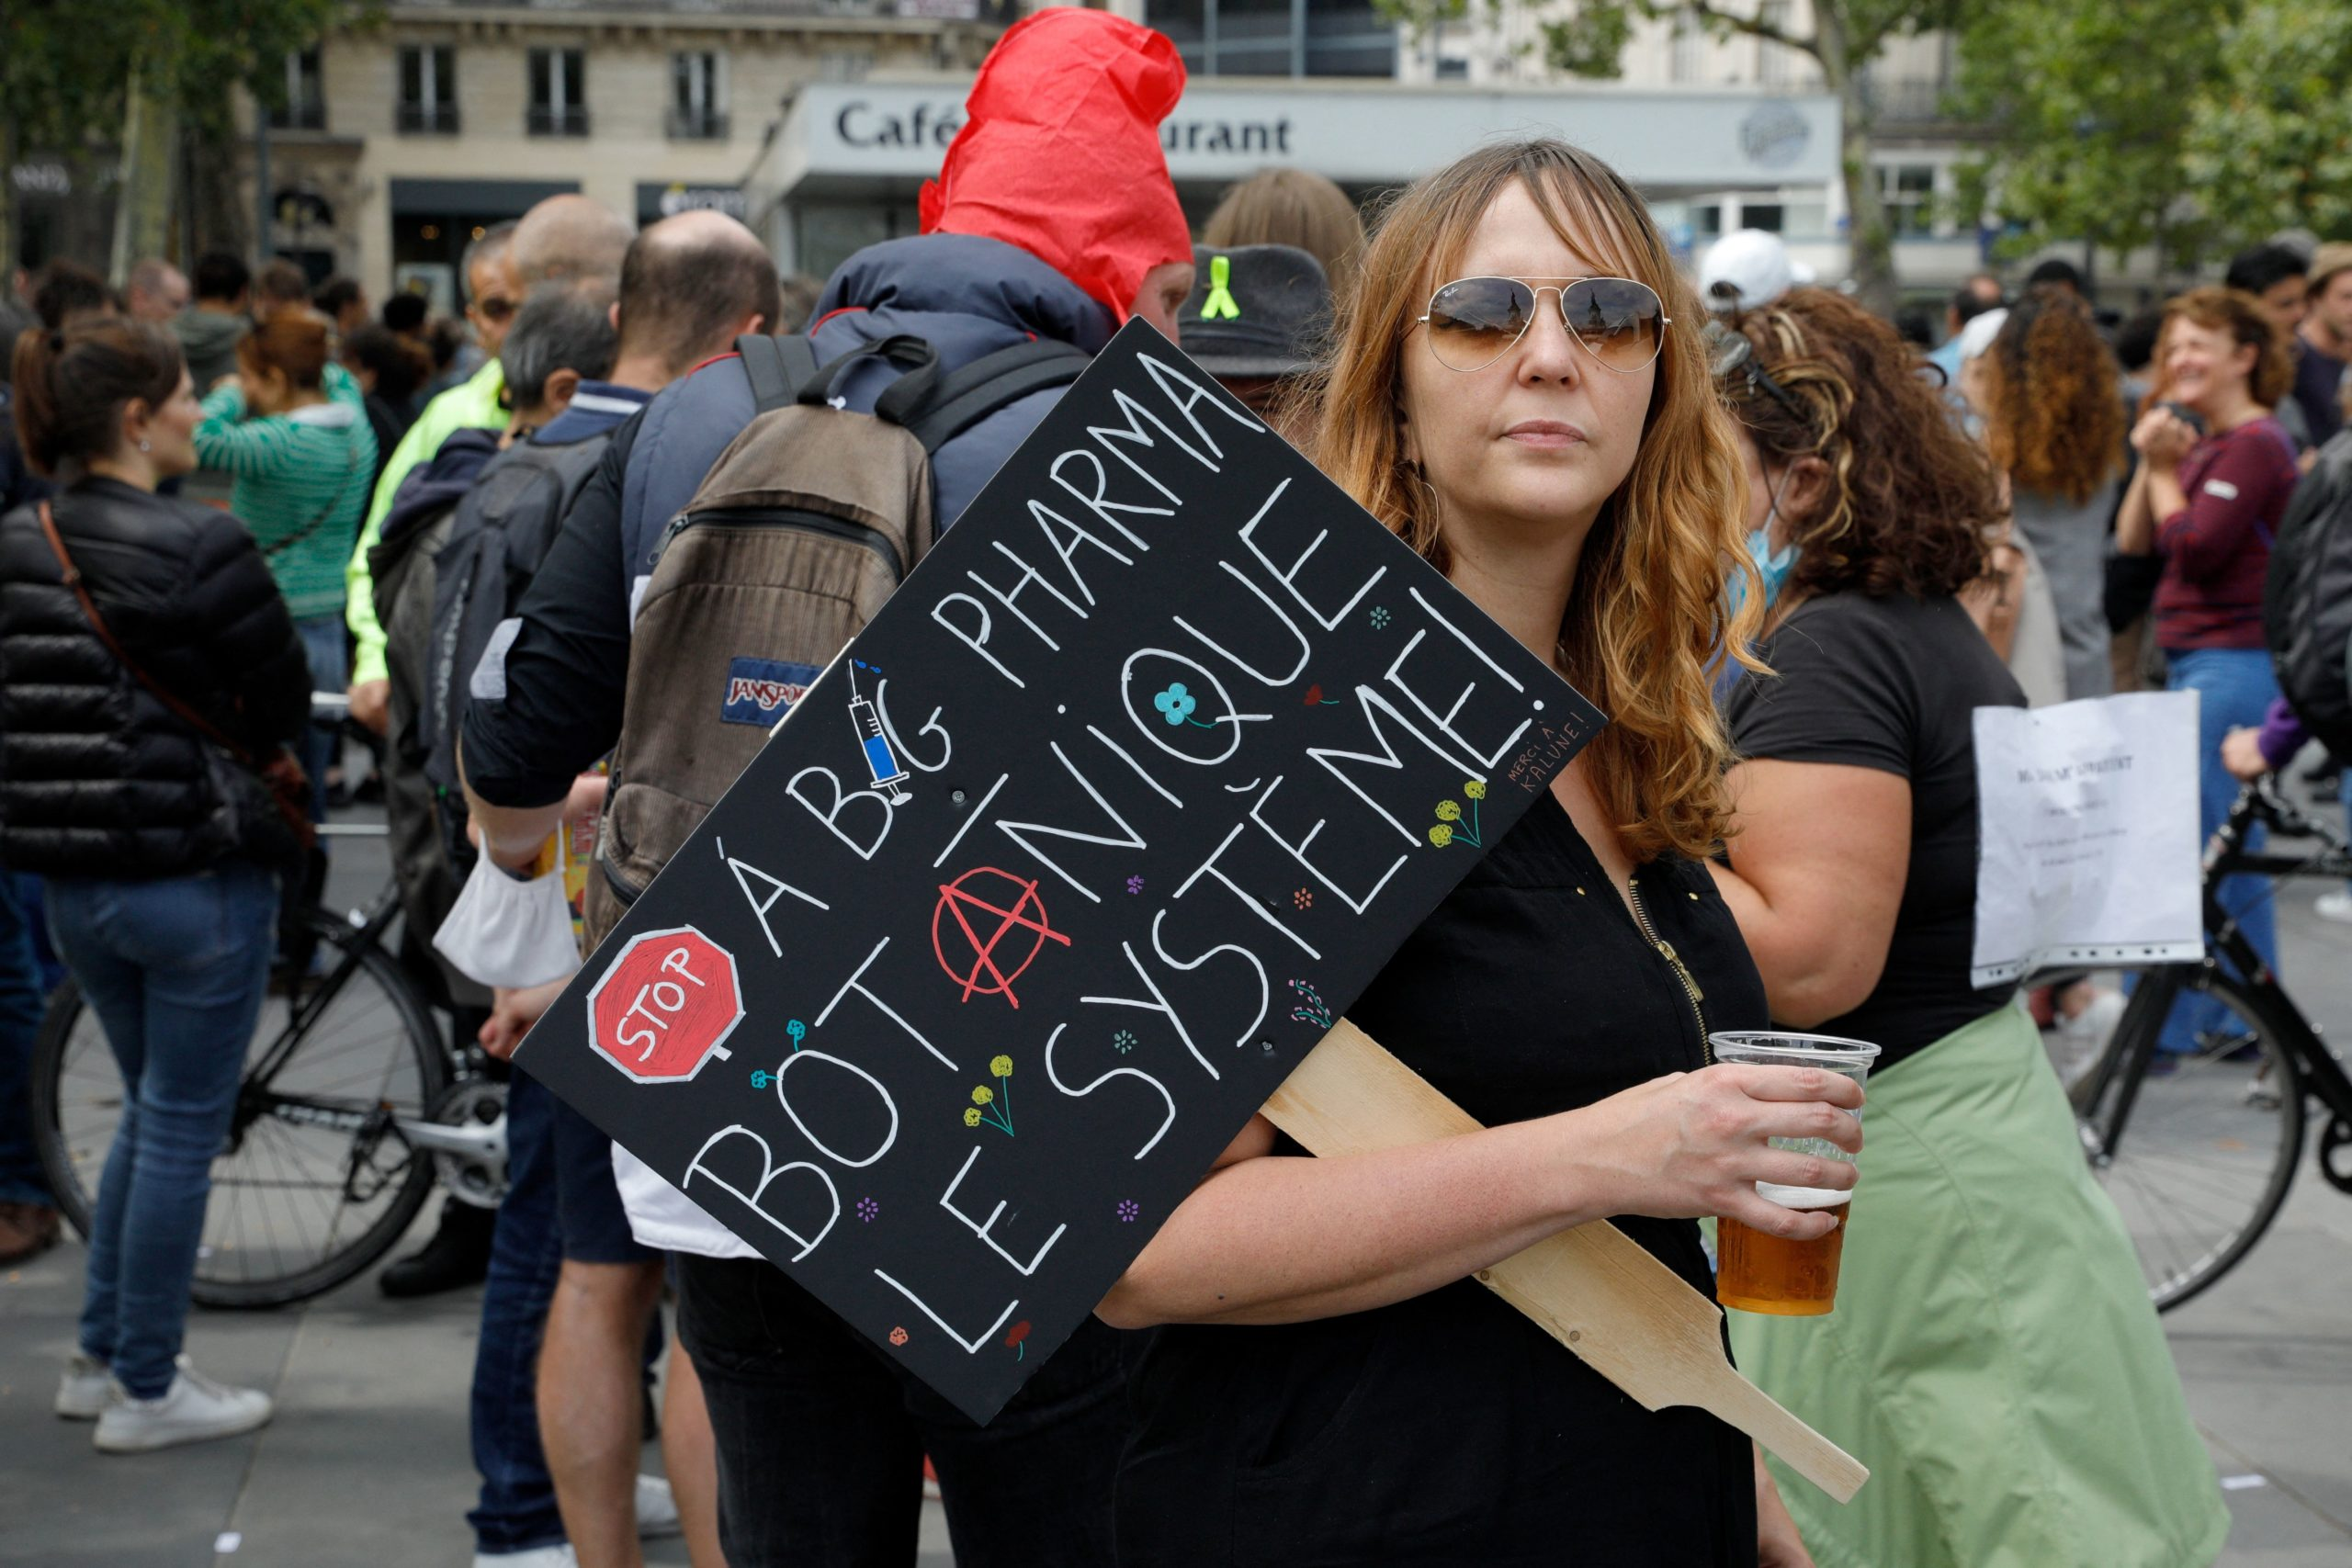 A woman holds a placard hostile to Pharmaceutical firms as she takes part in a gathering at Republic square in Paris on July 14, 2021 to protest against a governmental decision to impose Covid-19 tests for unvaccinated people who want to eat in restaurants or take long-distance trips, as the country looks to avoid a surge in more contagious Delta cases. French President announced the tougher measures on July 12, including mandatory vaccinations for healthcare and retirement home workers, prompting a surge in bookings for the jab. But critics accused the president of discriminating against sceptics or those who will not be fully vaccinated before the